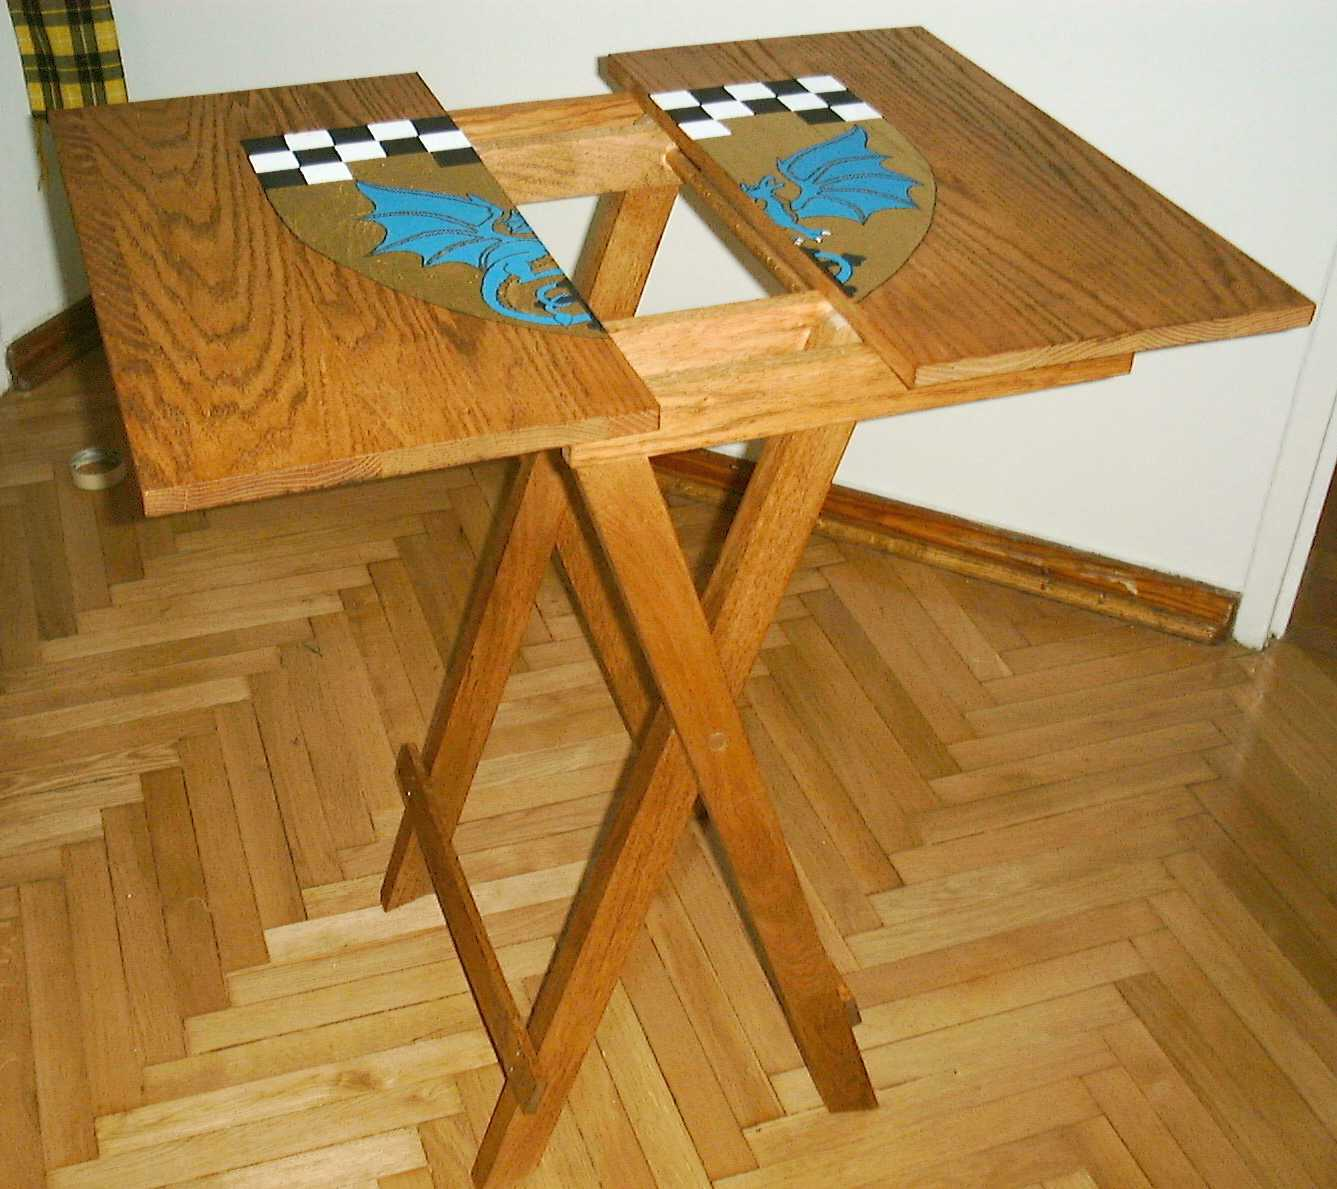 ... folding table plans Plans Wooden playground bench plans